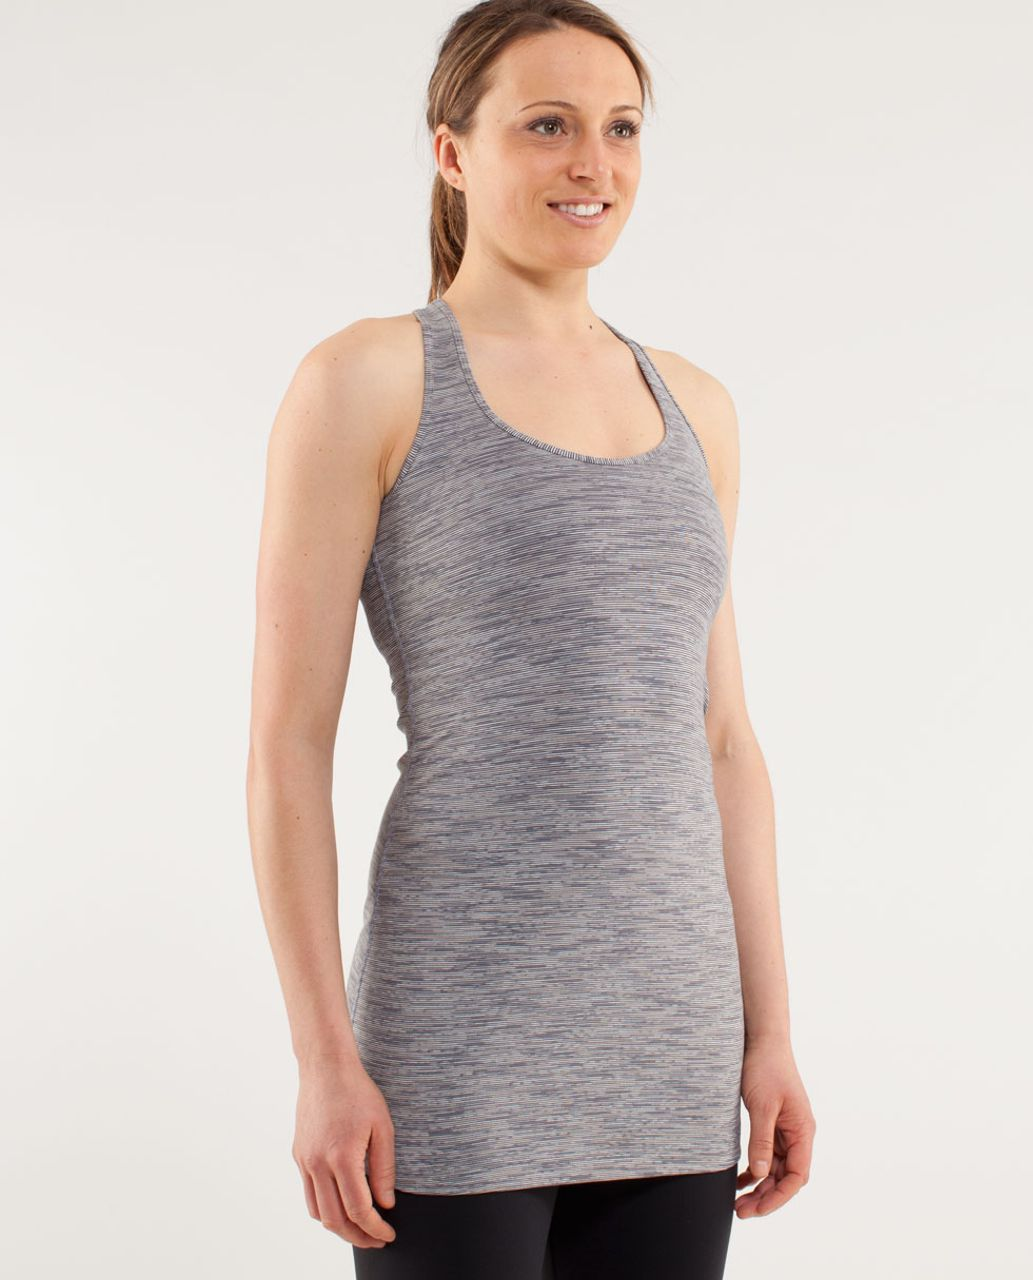 Lululemon Cool Racerback *Extra Long - Wee Are From Space Coal Fossil